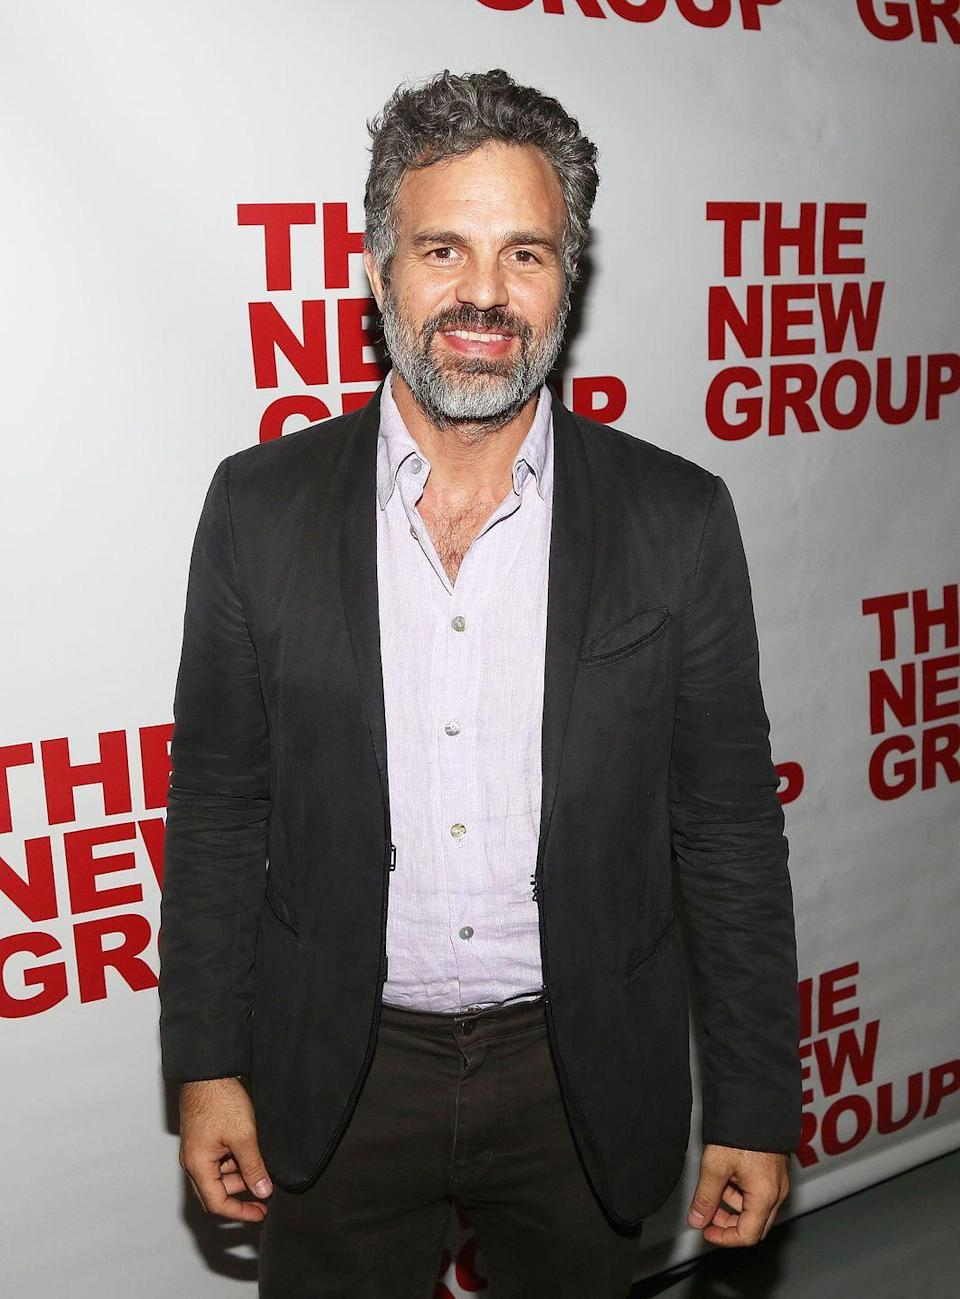 <p>Mark Ruffalo (a.k.a. <em>The Incredible Hulk</em>) just so happens to have incredibly thick chest hair. Clearly, he knows it's an asset and, as such, shows it off whenever acceptable. </p>